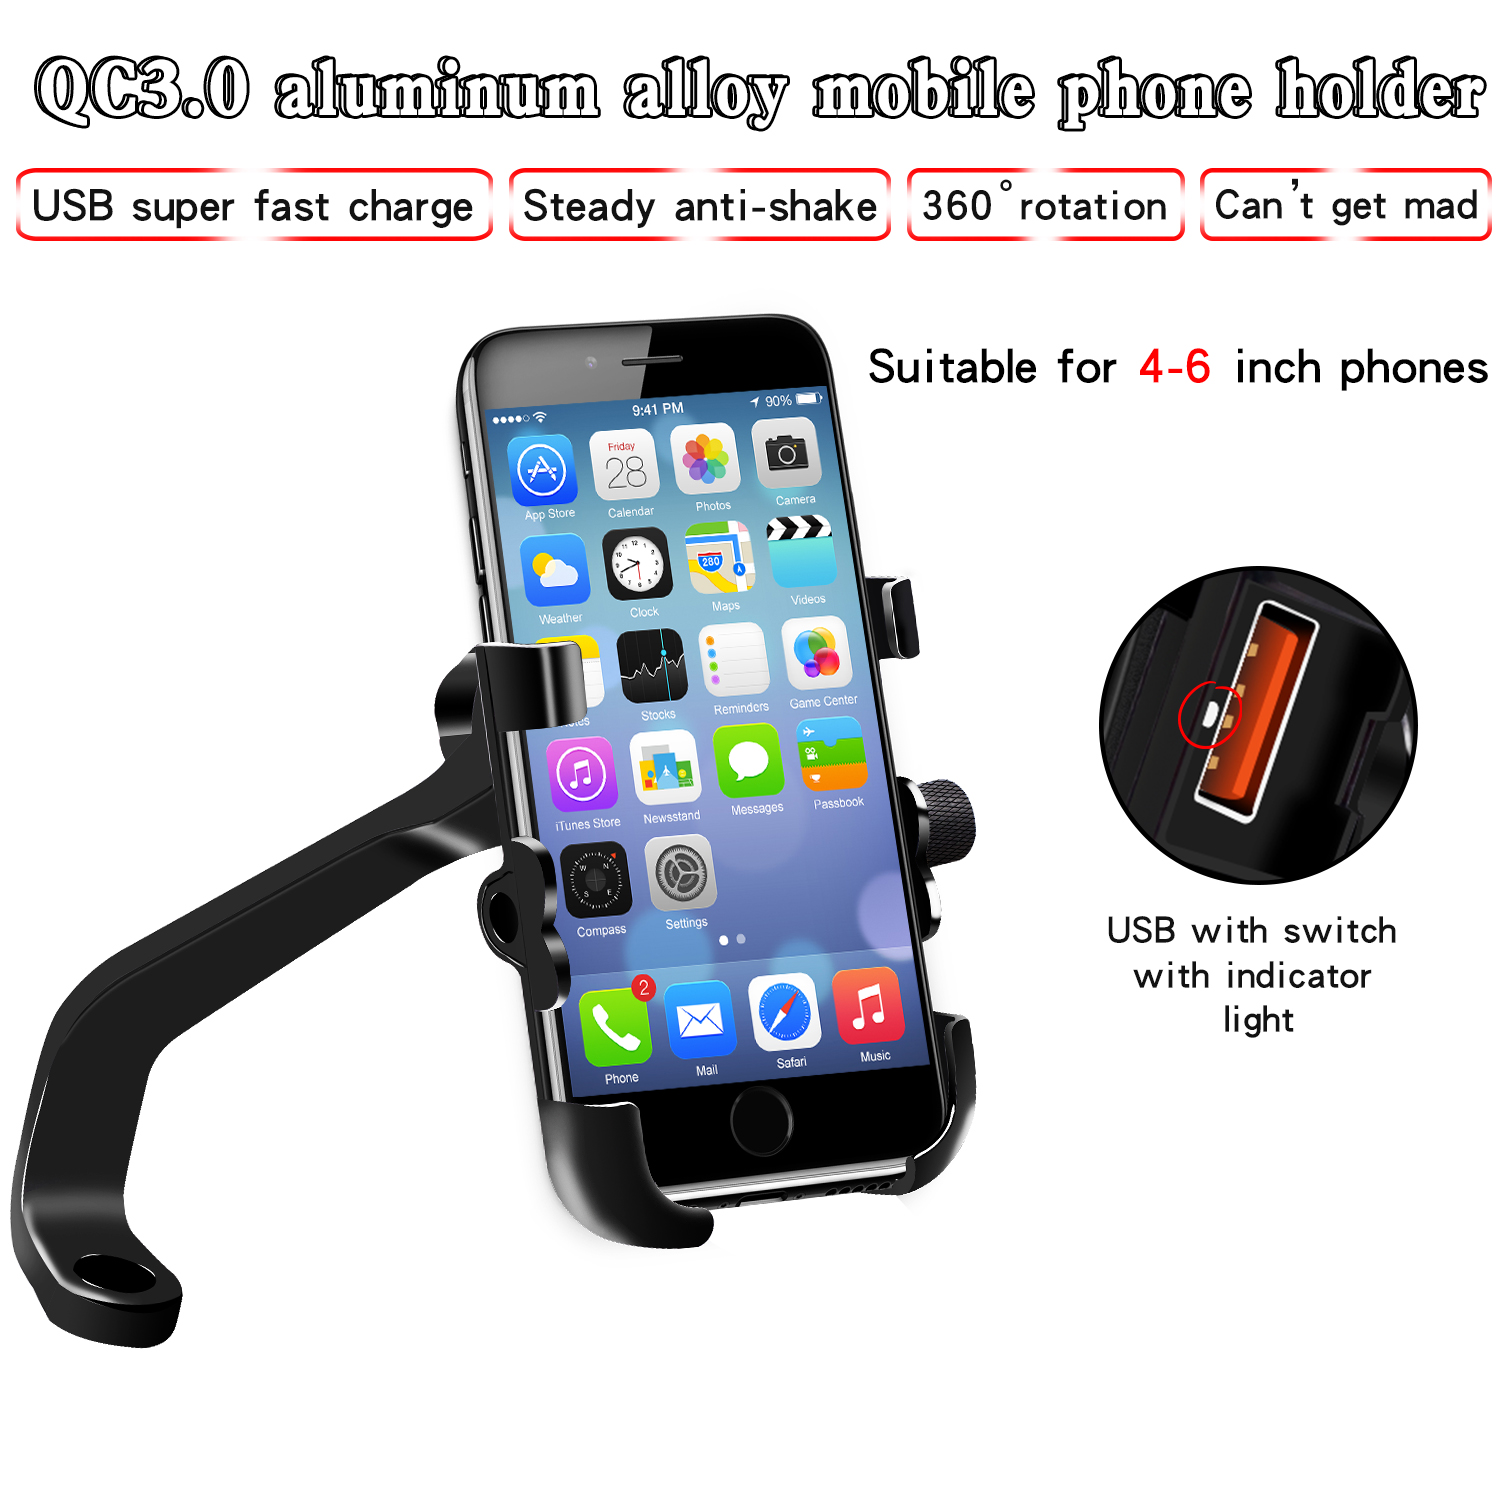 Motorcycle Mobile Phone Holder Aluminum Alloy Waterproof QC3.0 Quick Charge Multifunctional Rearview Mirror Holder